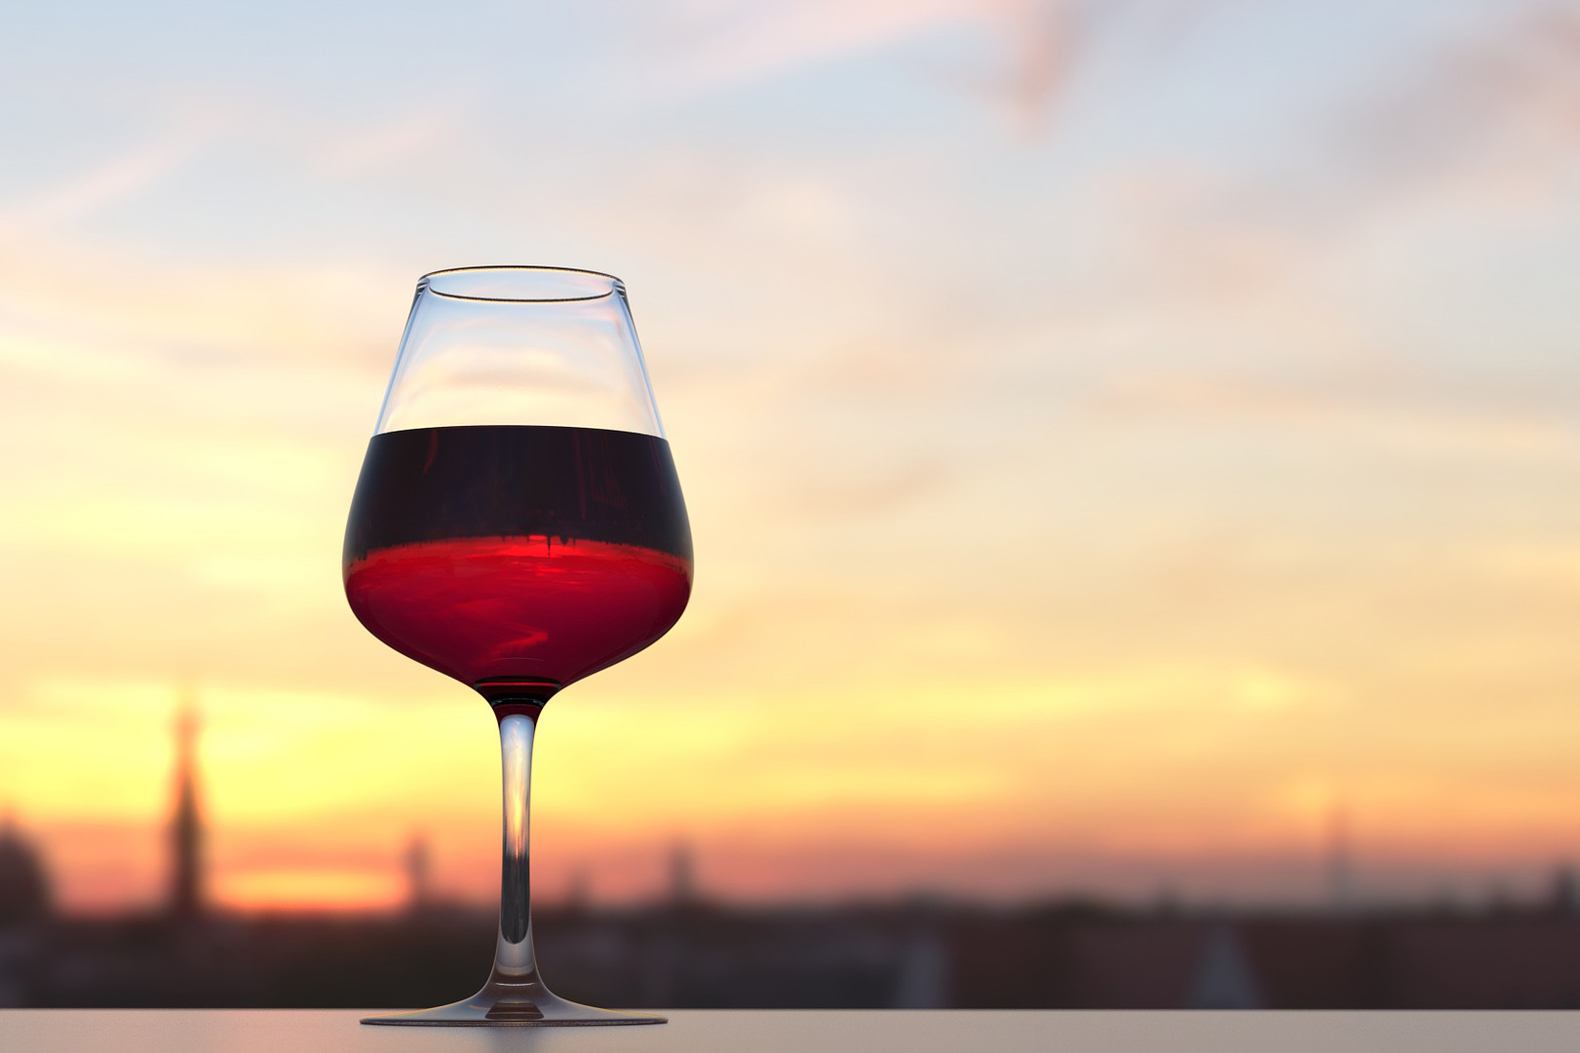 This is how climate change will impact wine